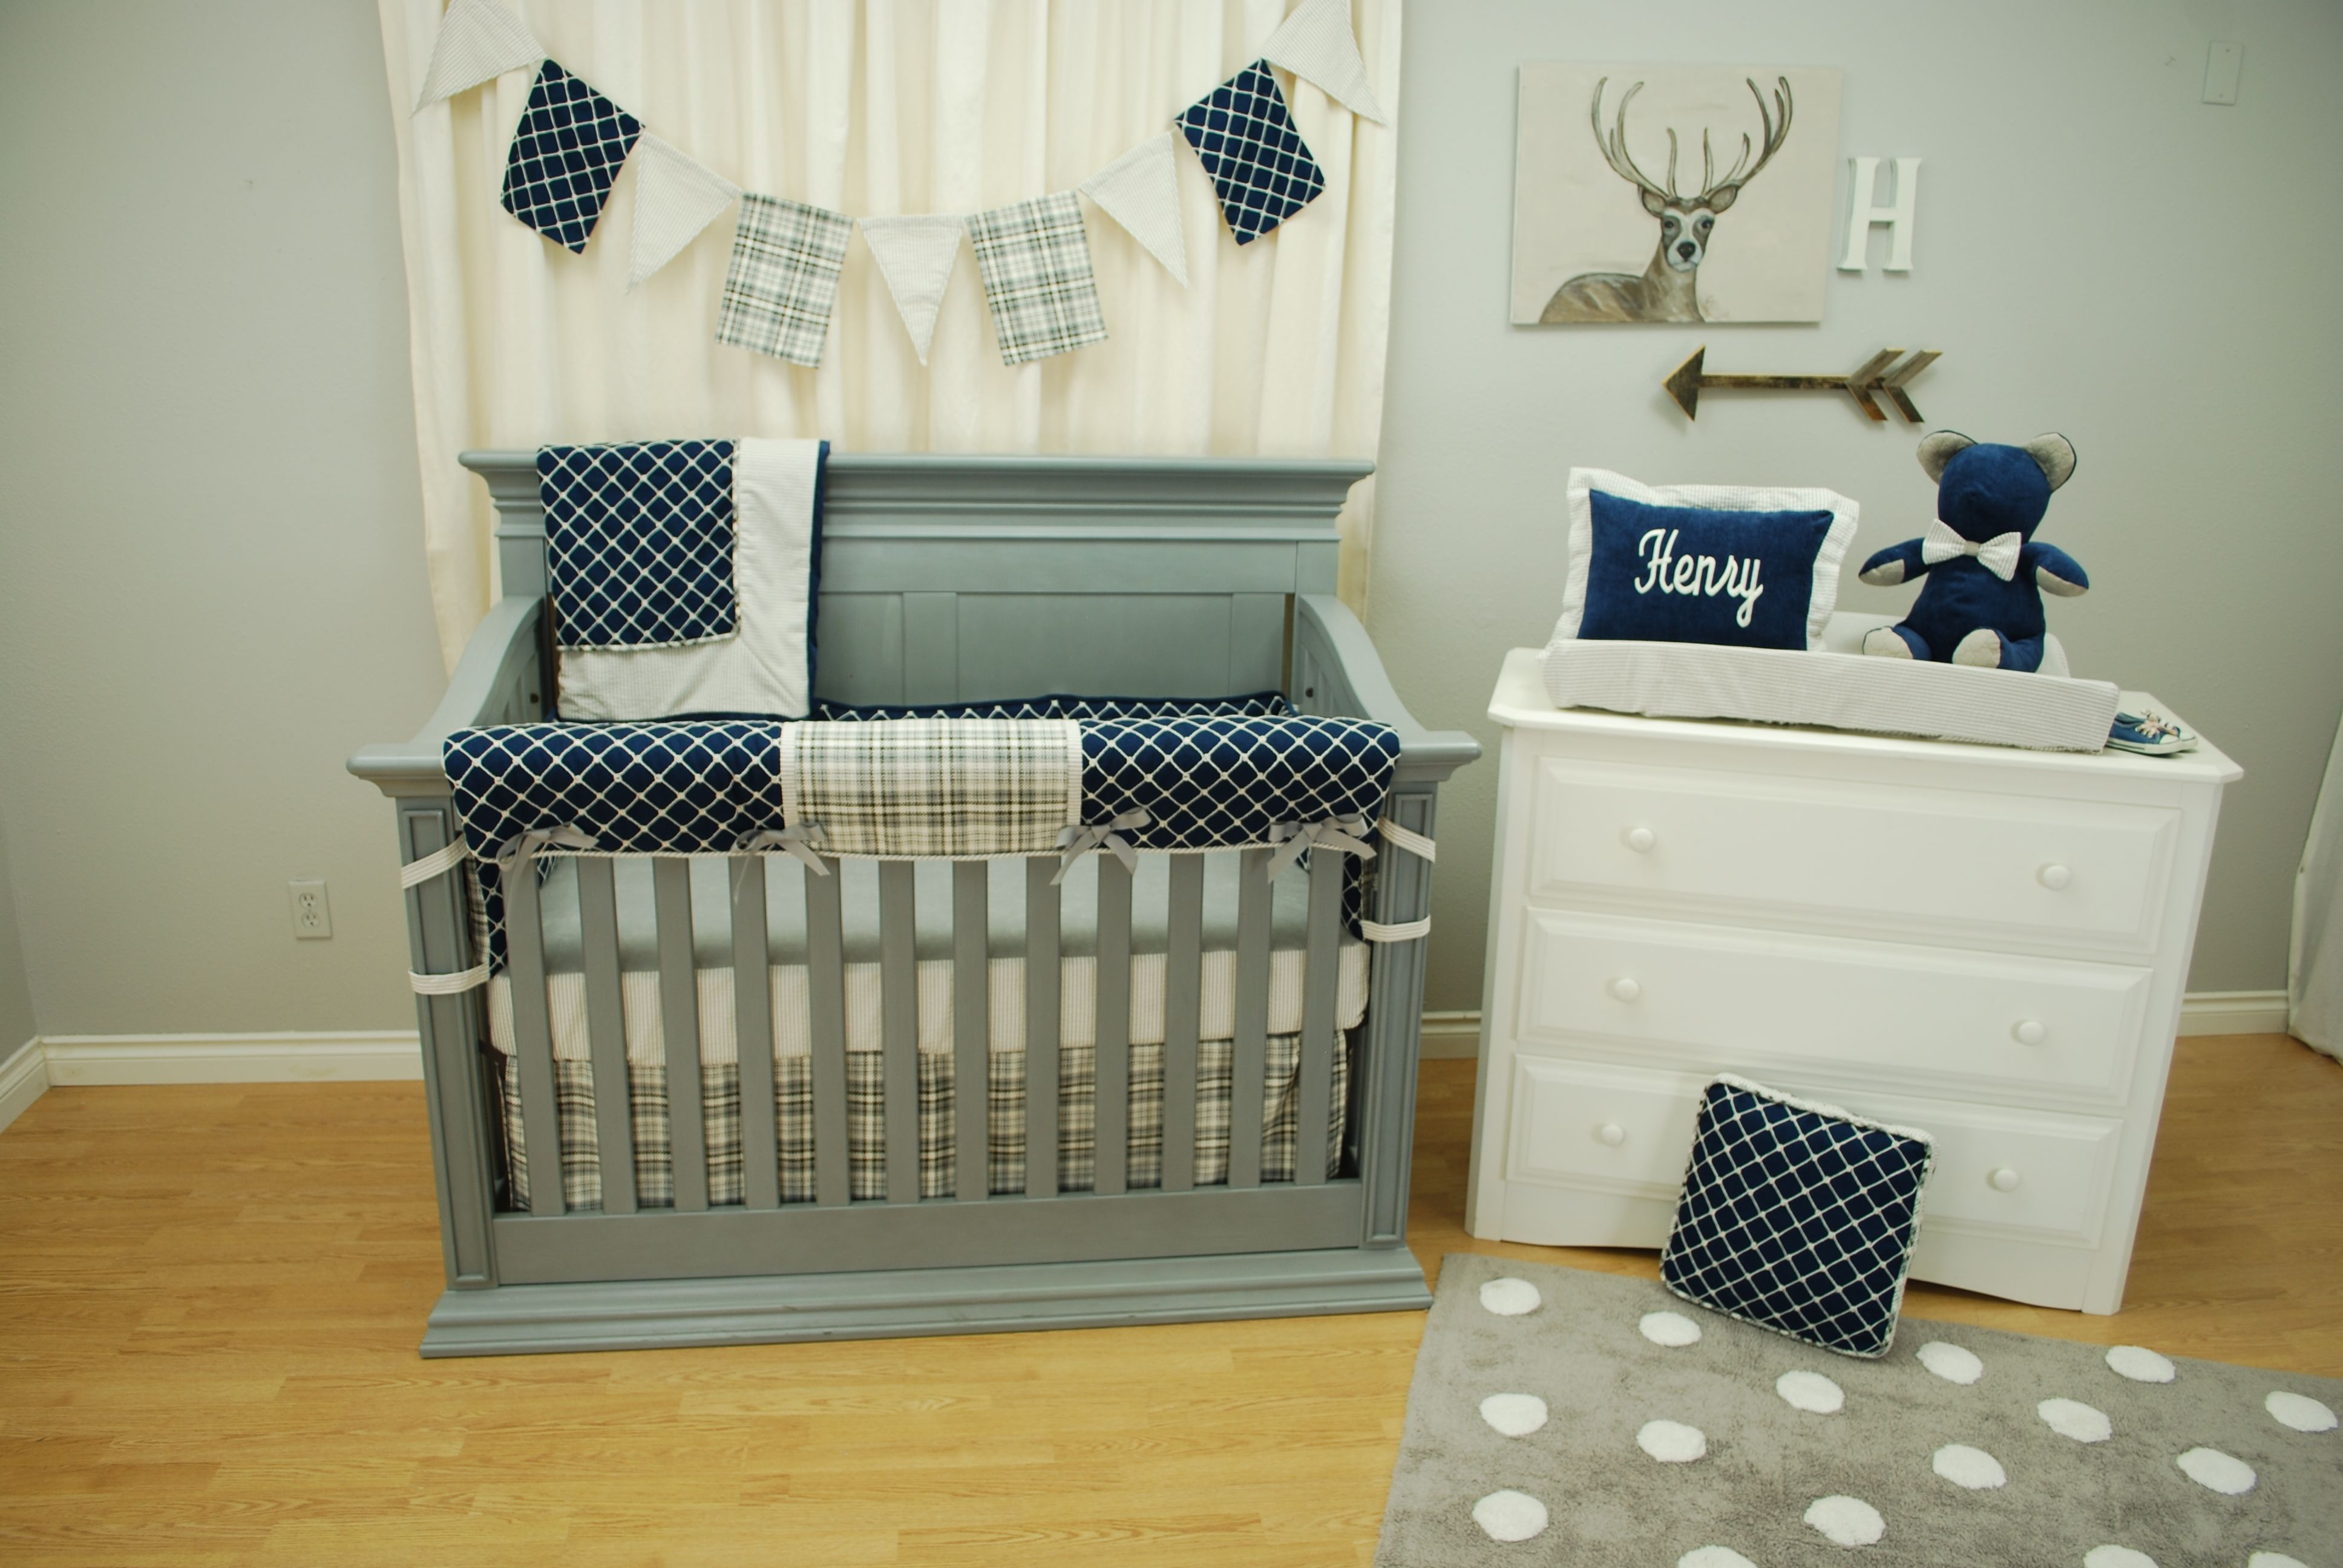 buckeyes pam s three red bird buffalo size girl set bedding love crib in nursery full dots bed plaid pieces gray interiordecorating state decor deer neutral stripes white of arrow cribs ohio and black baby